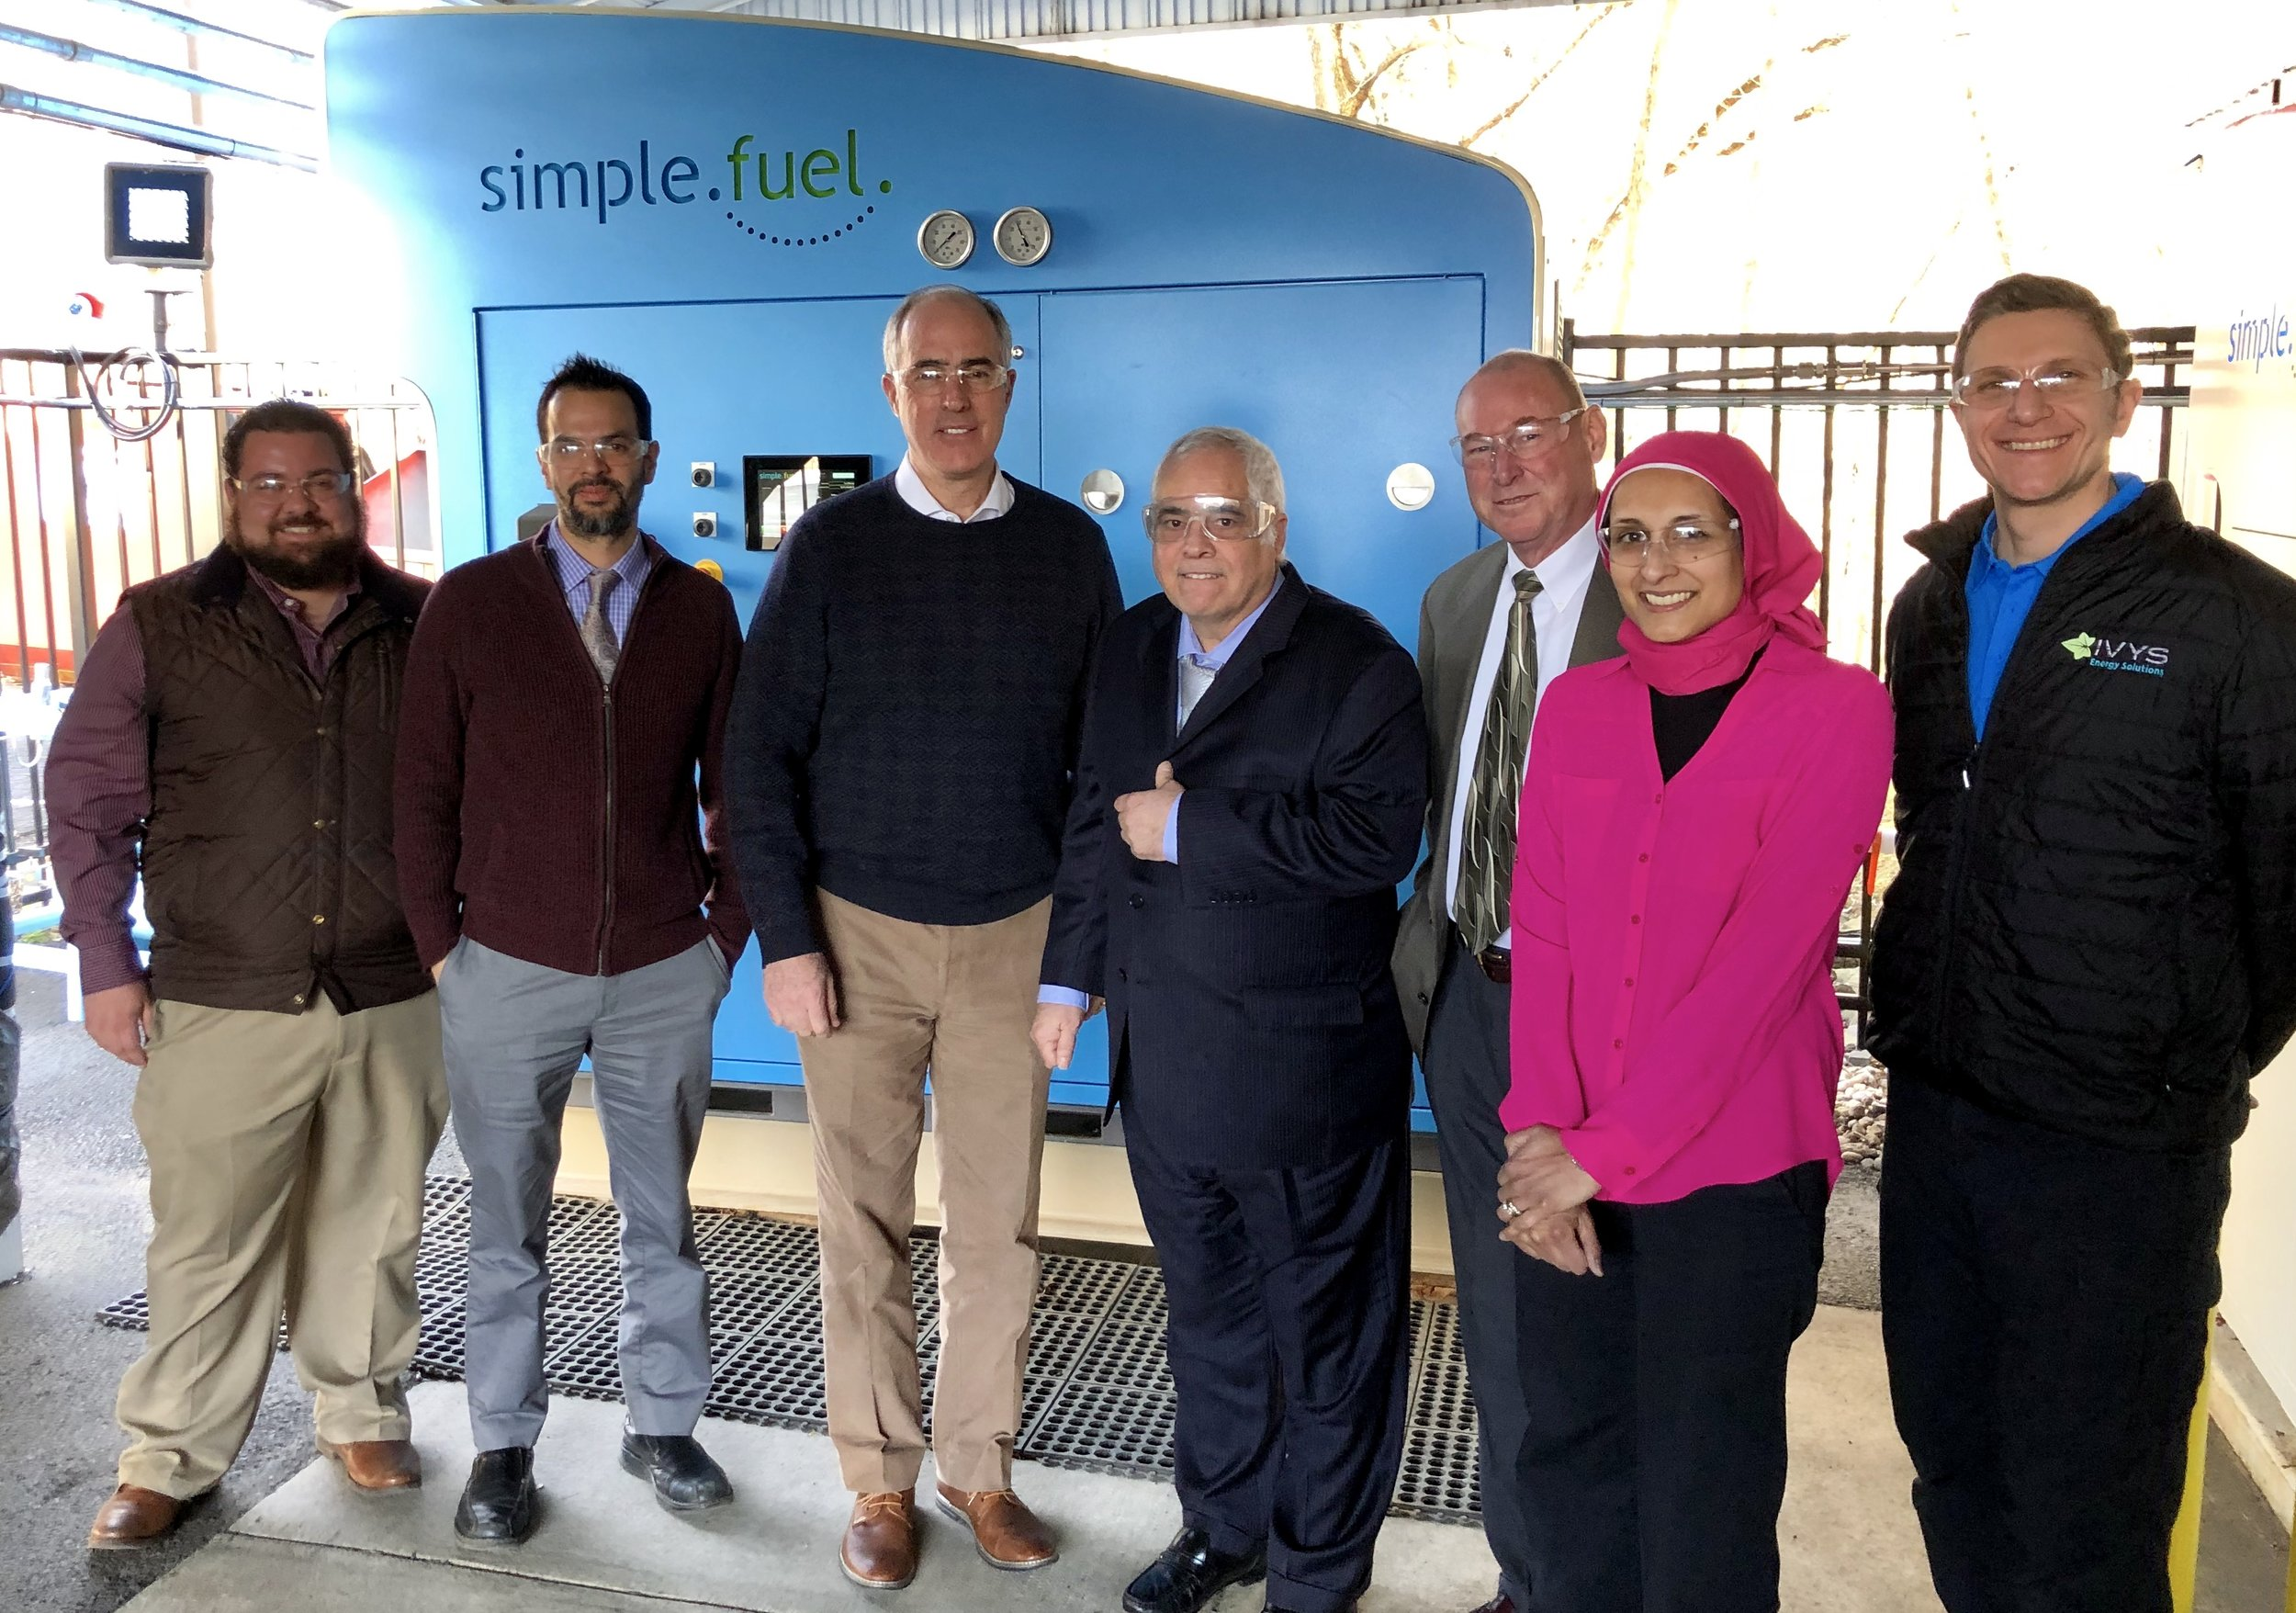 Senator Casey (third from left) with PDC Machines employees in front of SimpleFuel, an on-site hydrogen generation, compression, storage and dispensing appliance that uses water and electricity to produce high purity fuel cell-grade hydrogen.